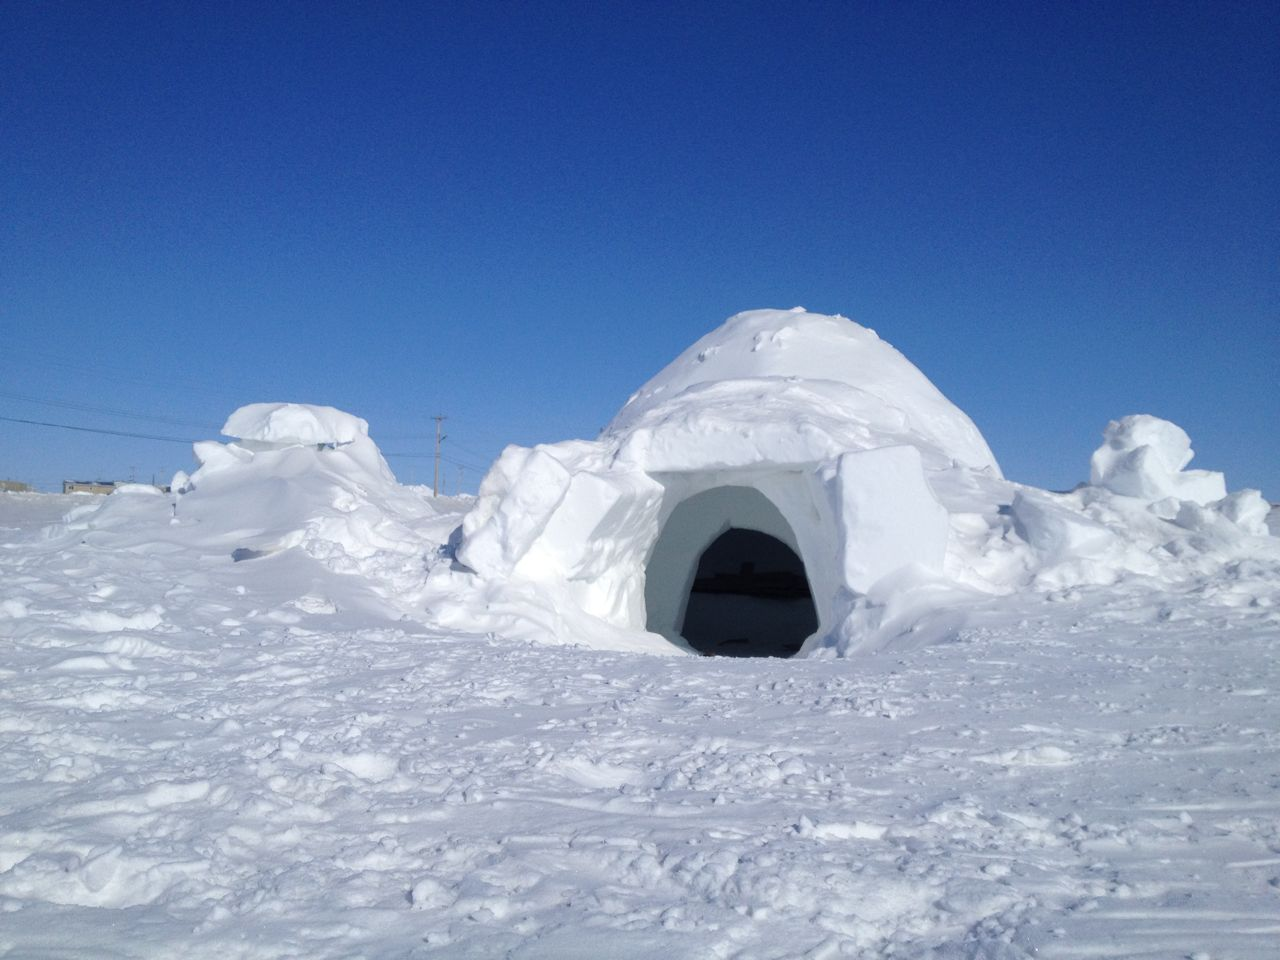 Construction: How To Build An Igloo (Just In Case)